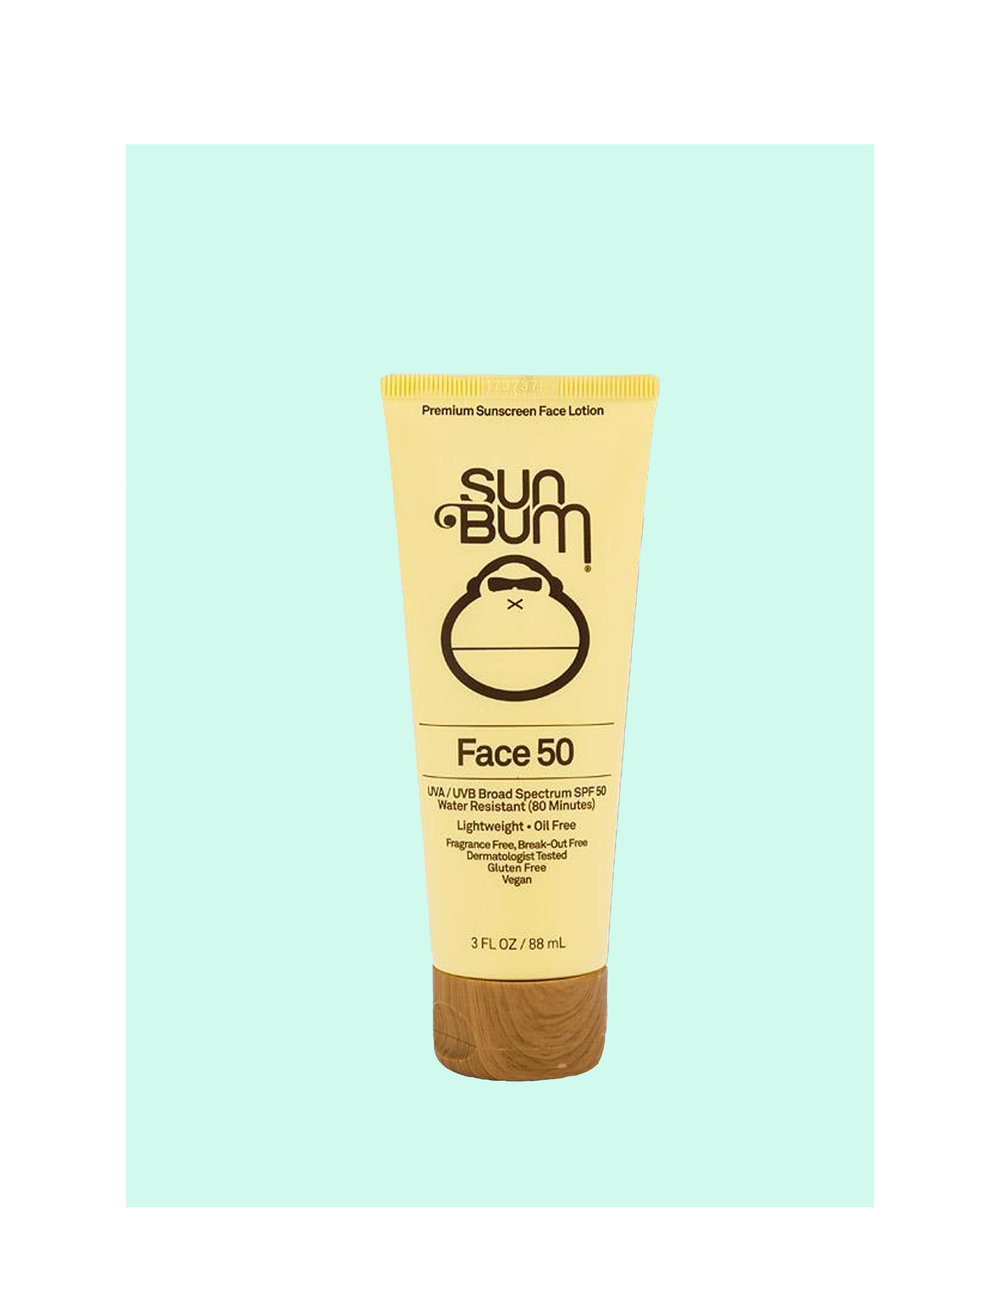 Recommended by: Carly Mackler & Audrey Ruiz  Skin Type: Combination, Dry  SPF: 50 - Overall Thoughts:Carly: